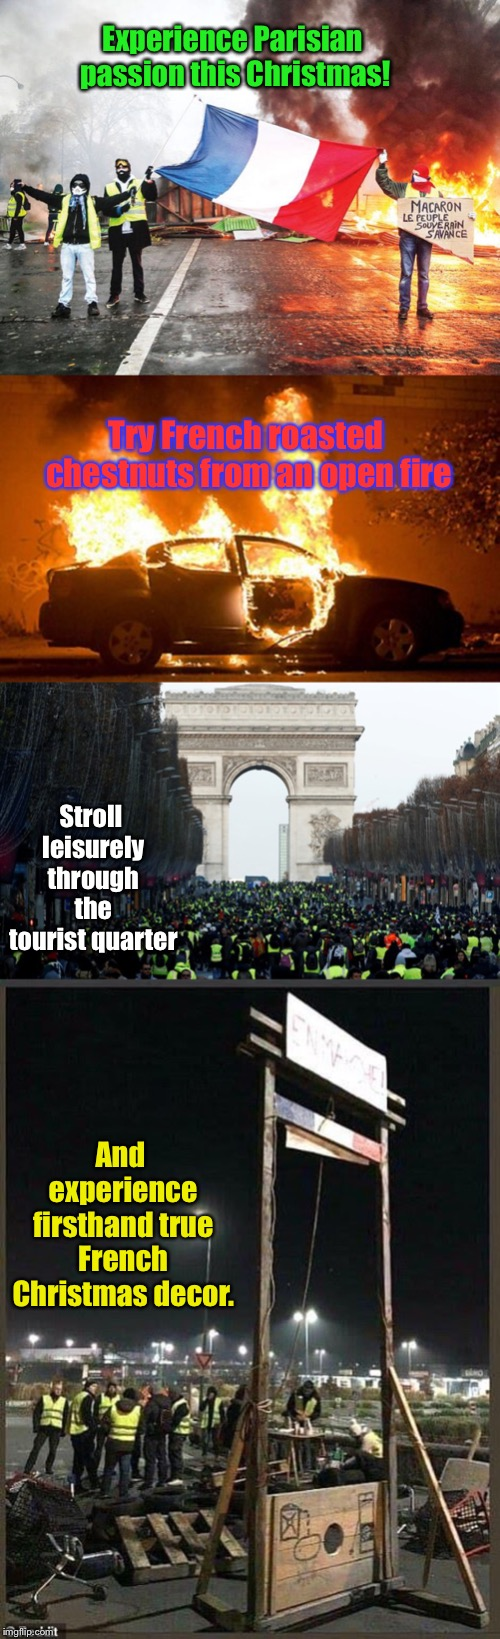 Book your authentic French Christmas get-away today.  You'll find it - revolutionary. | Experience Parisian passion this Christmas! Try French roasted chestnuts from an open fire Stroll leisurely through the tourist quarter And  | image tagged in french riots,paris riots,christmas,tourism,violence,guillotine | made w/ Imgflip meme maker